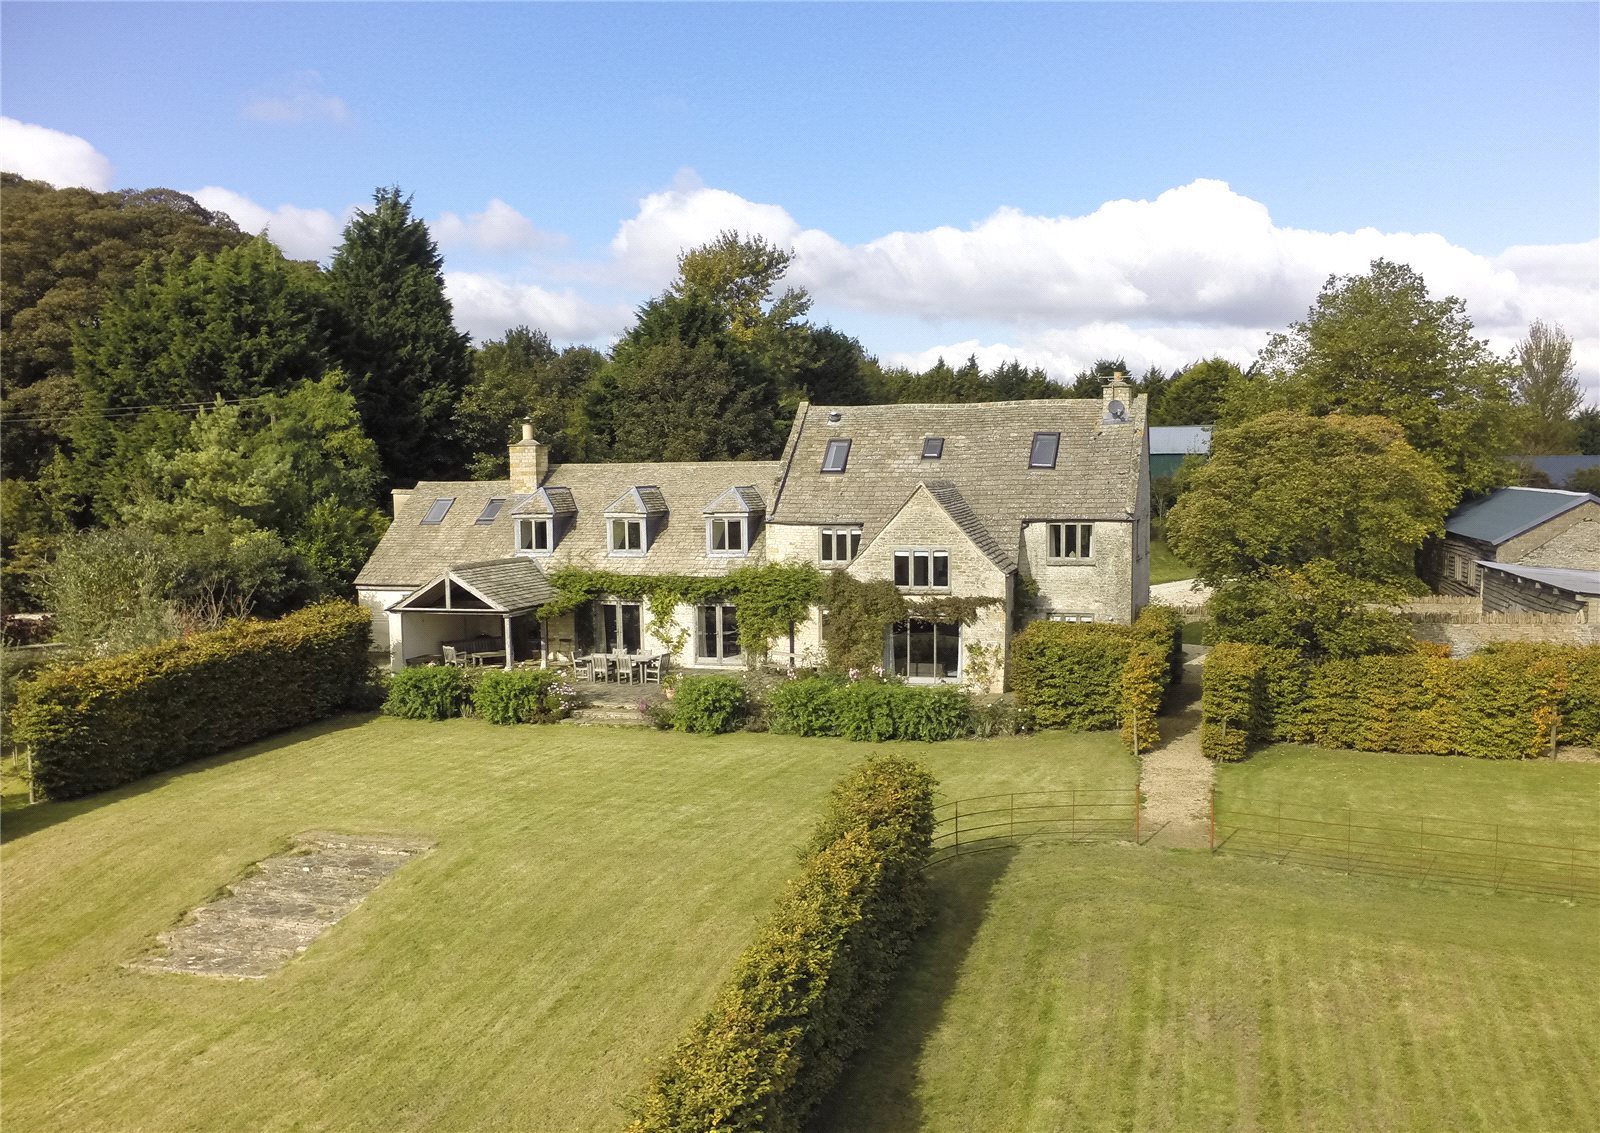 Single Family Home for Sale at Bourton-on-the-Water, Cheltenham, Gloucestershire, GL54 Cheltenham, England